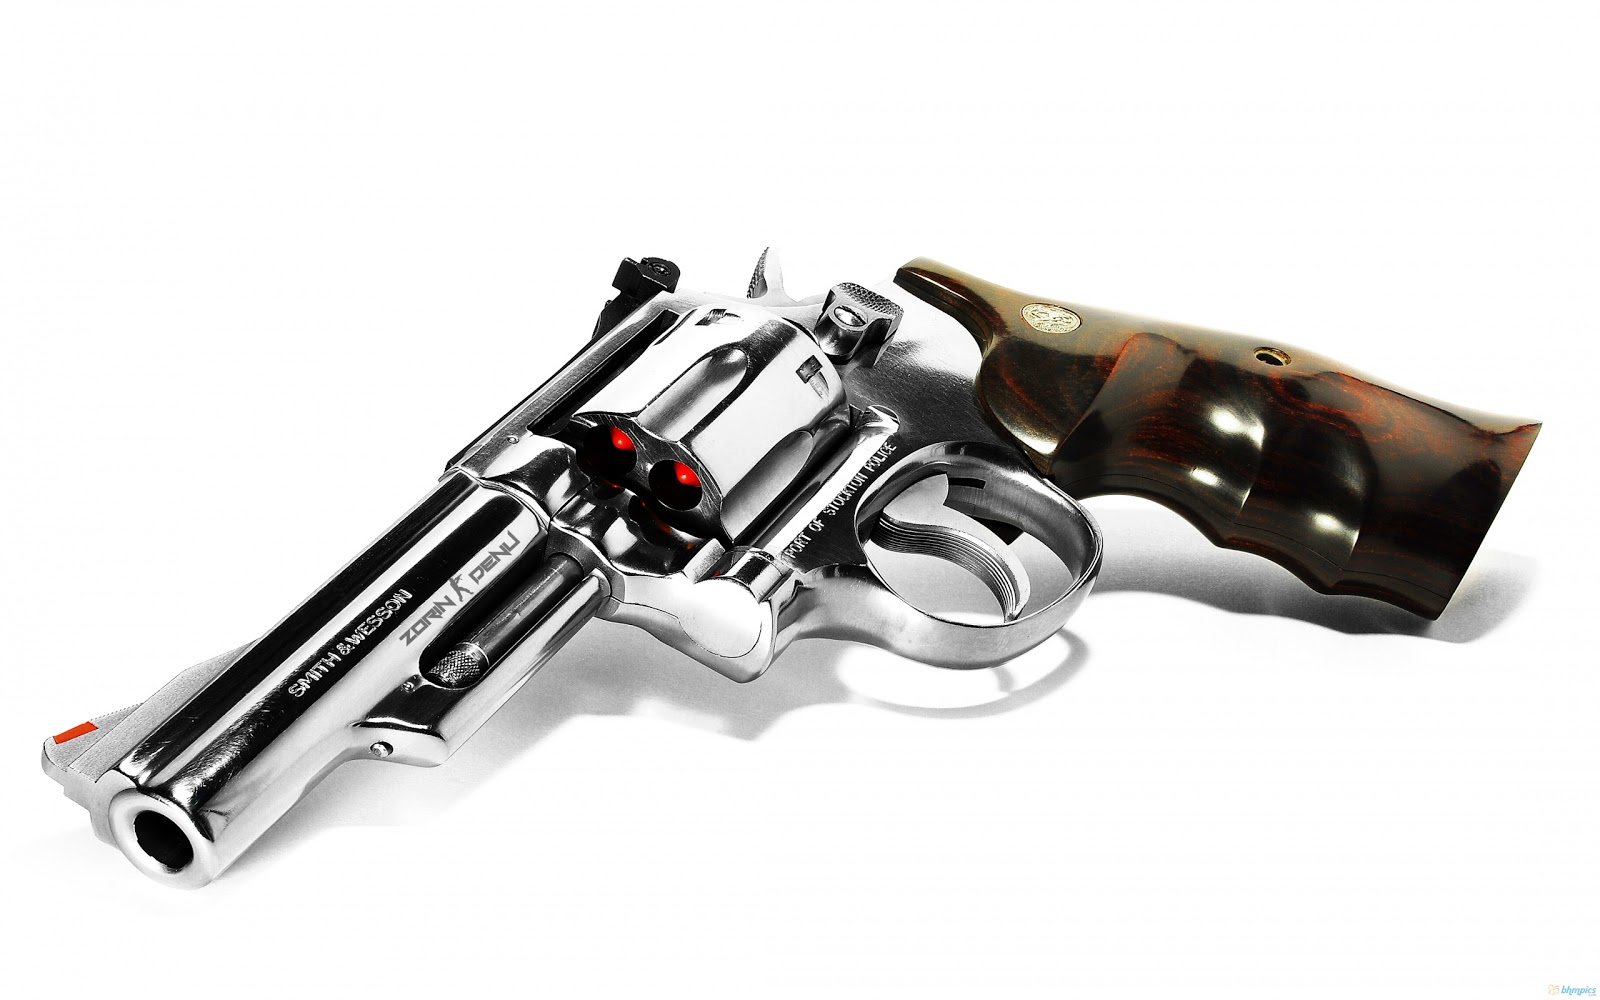 Smith Wesson Gun Wallpaper Smith Wesson Gun Wallpaper 1600x1000